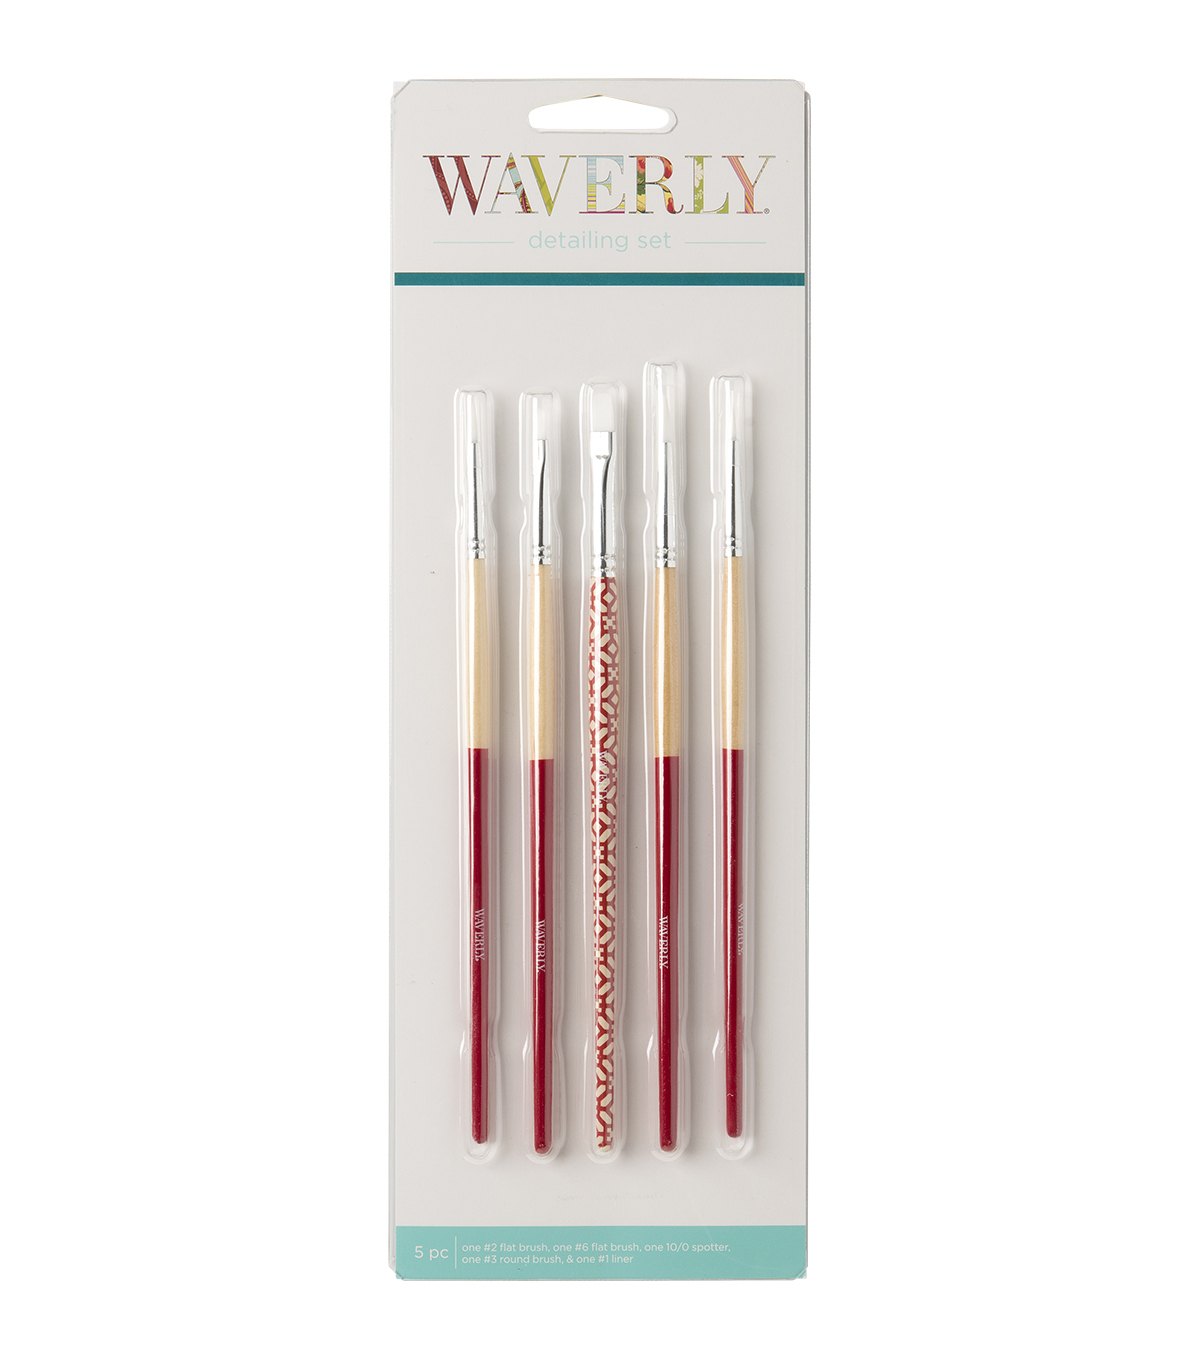 Waverly Detailing Brush Set 5pk